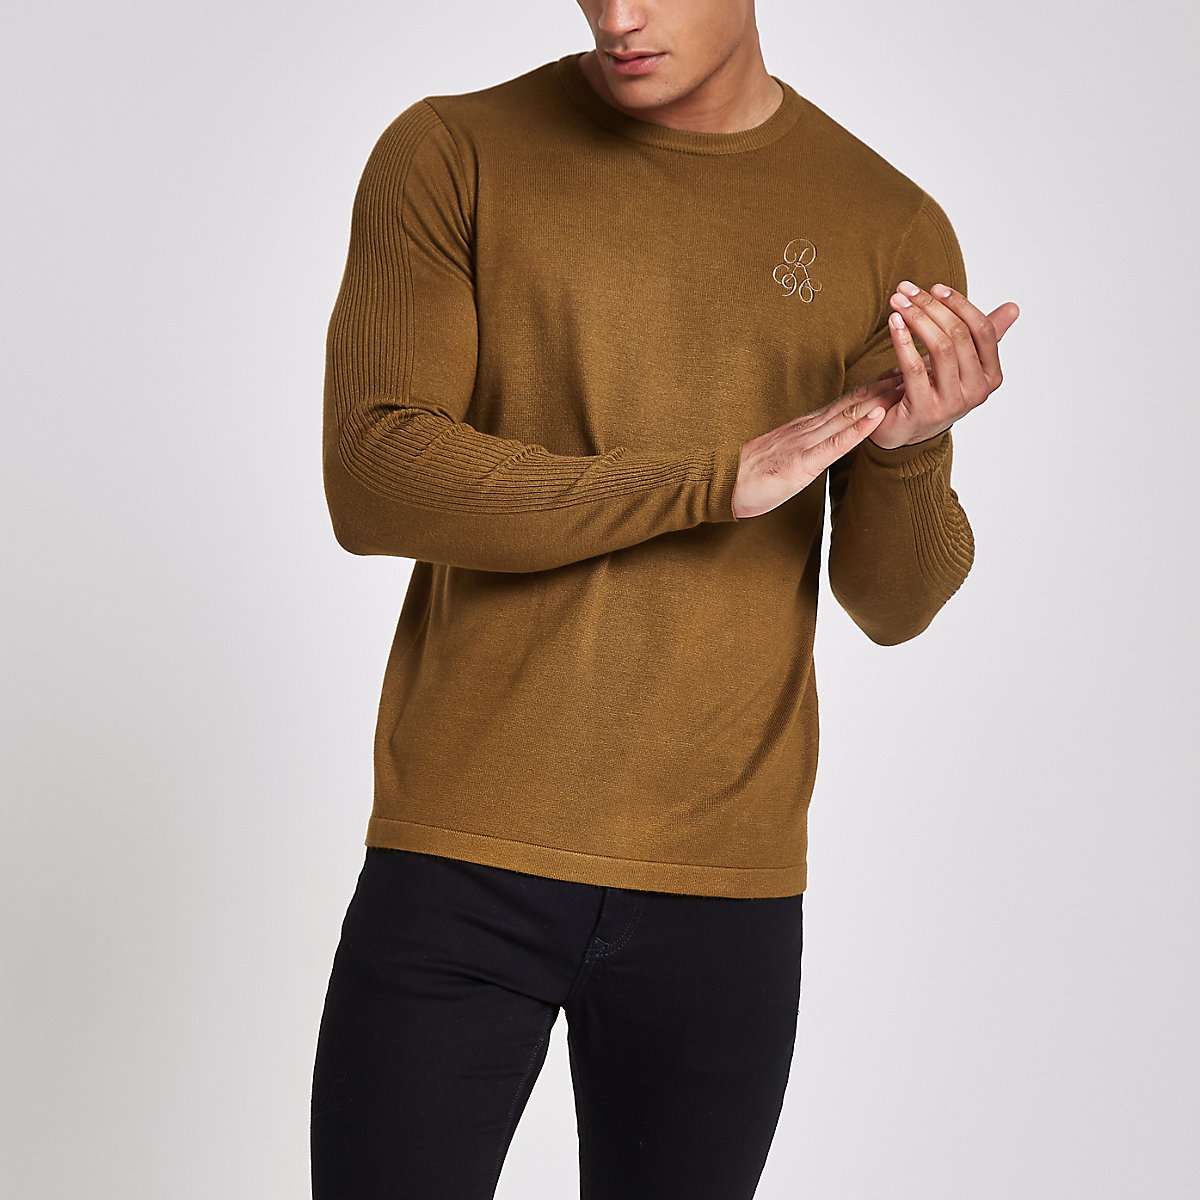 R96 green slim fit crew neck jumper